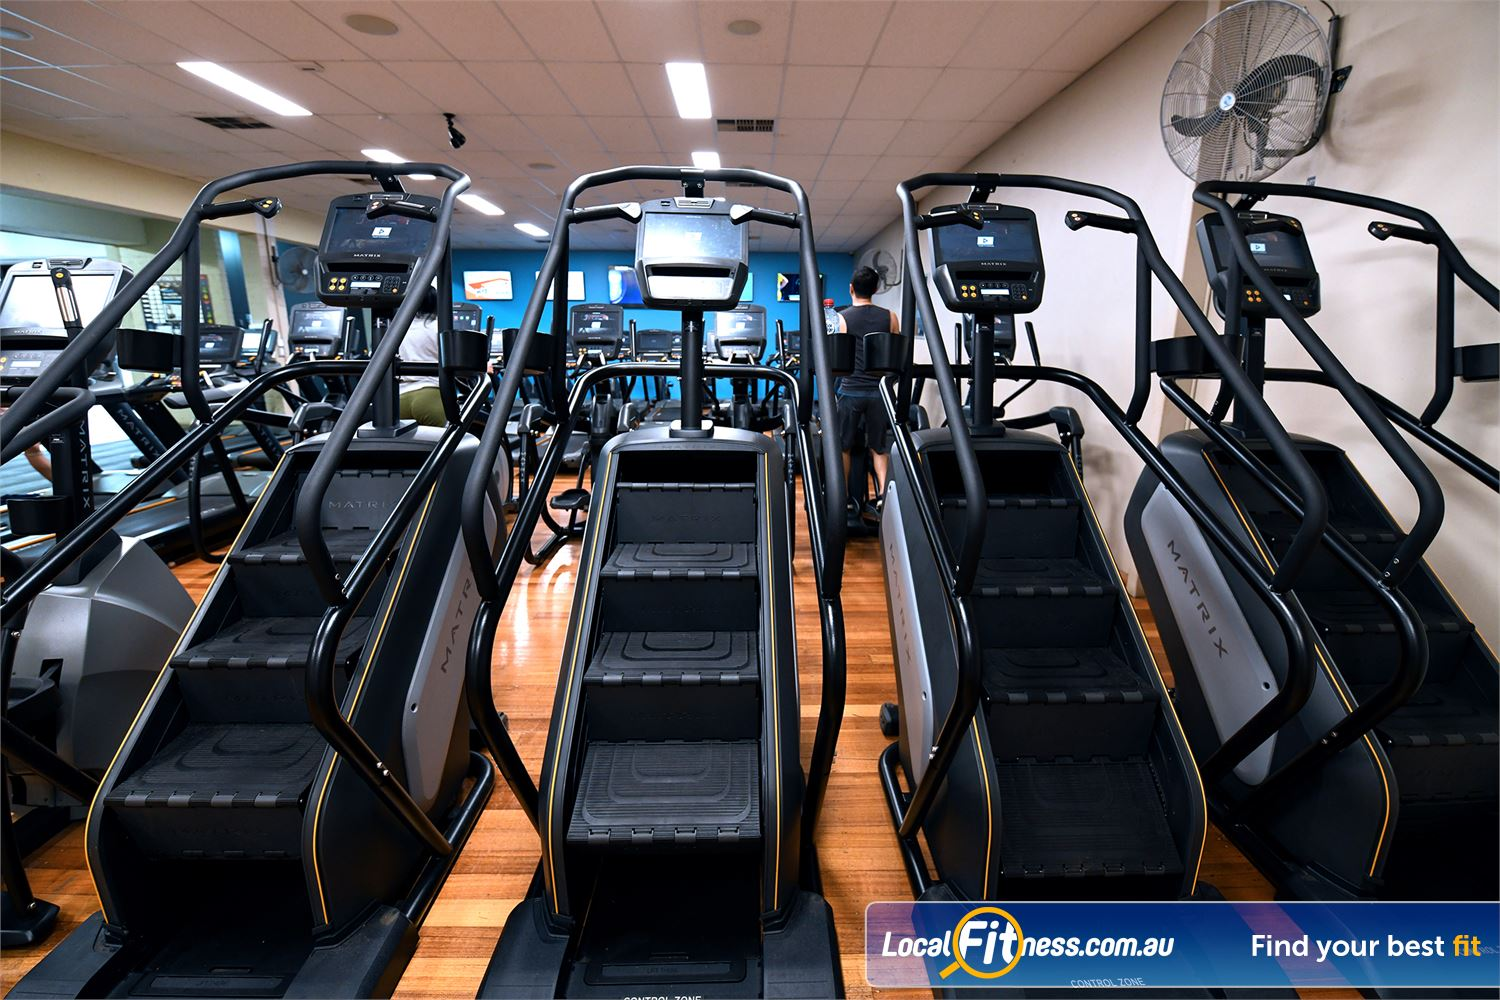 Goodlife Health Clubs Hoppers Crossing We have 4 popular stair climbers in our Hoppers Crossing gym.